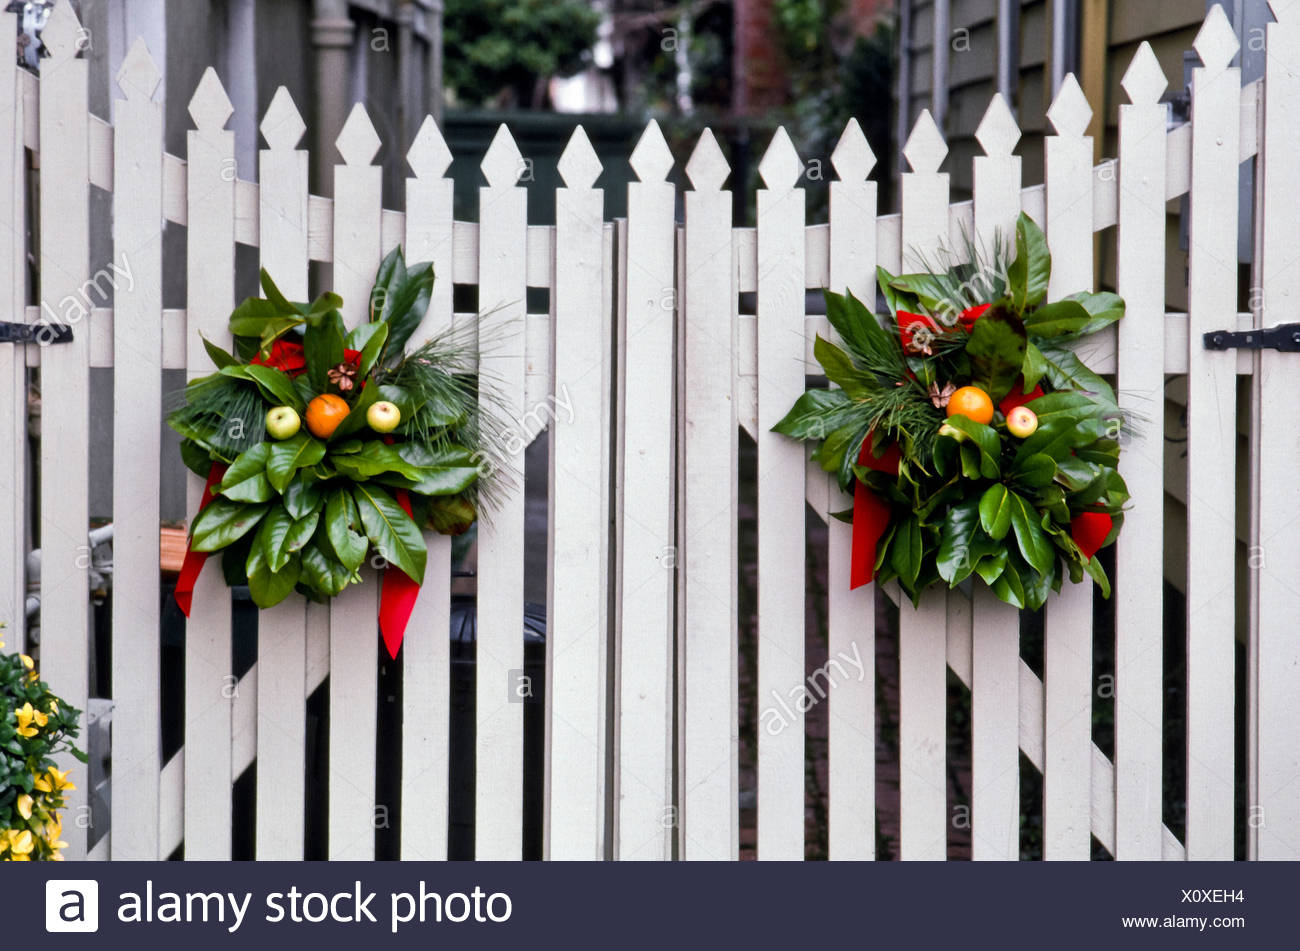 christmas decorations of greenery wreaths decorate on white picket fence gate portsmouth virginia usa